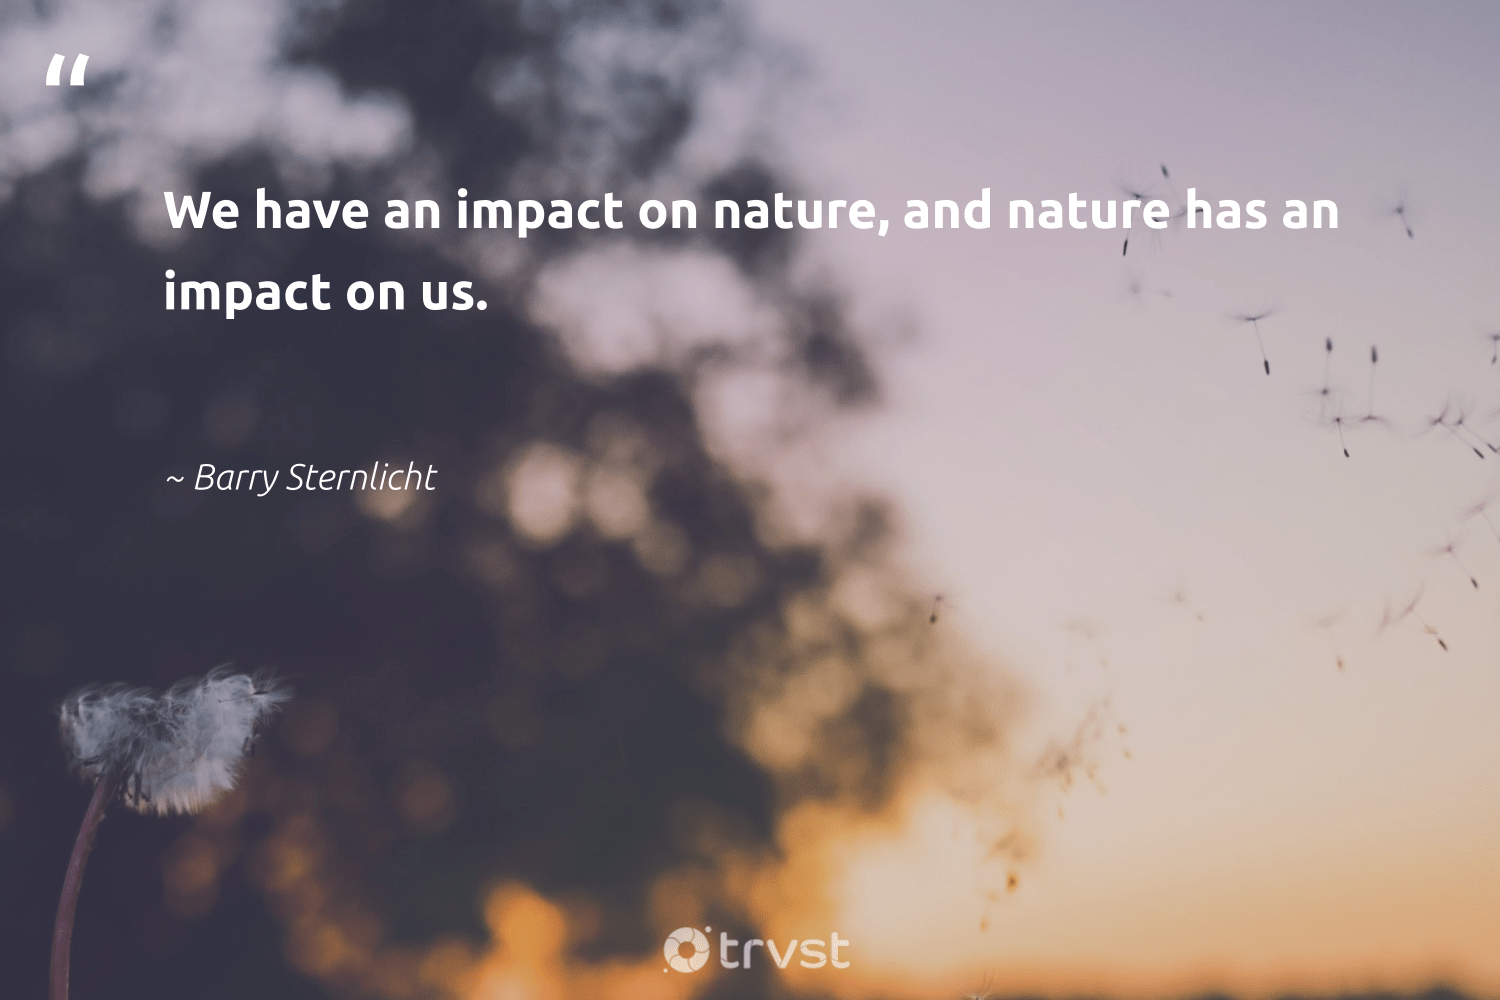 """""""We have an impact on nature, and nature has an impact on us.""""  - Barry Sternlicht #trvst #quotes #environment #impact #nature #mothernature #naturelovers #earth #beinspired #conservation #sustainability #wildernessnation"""